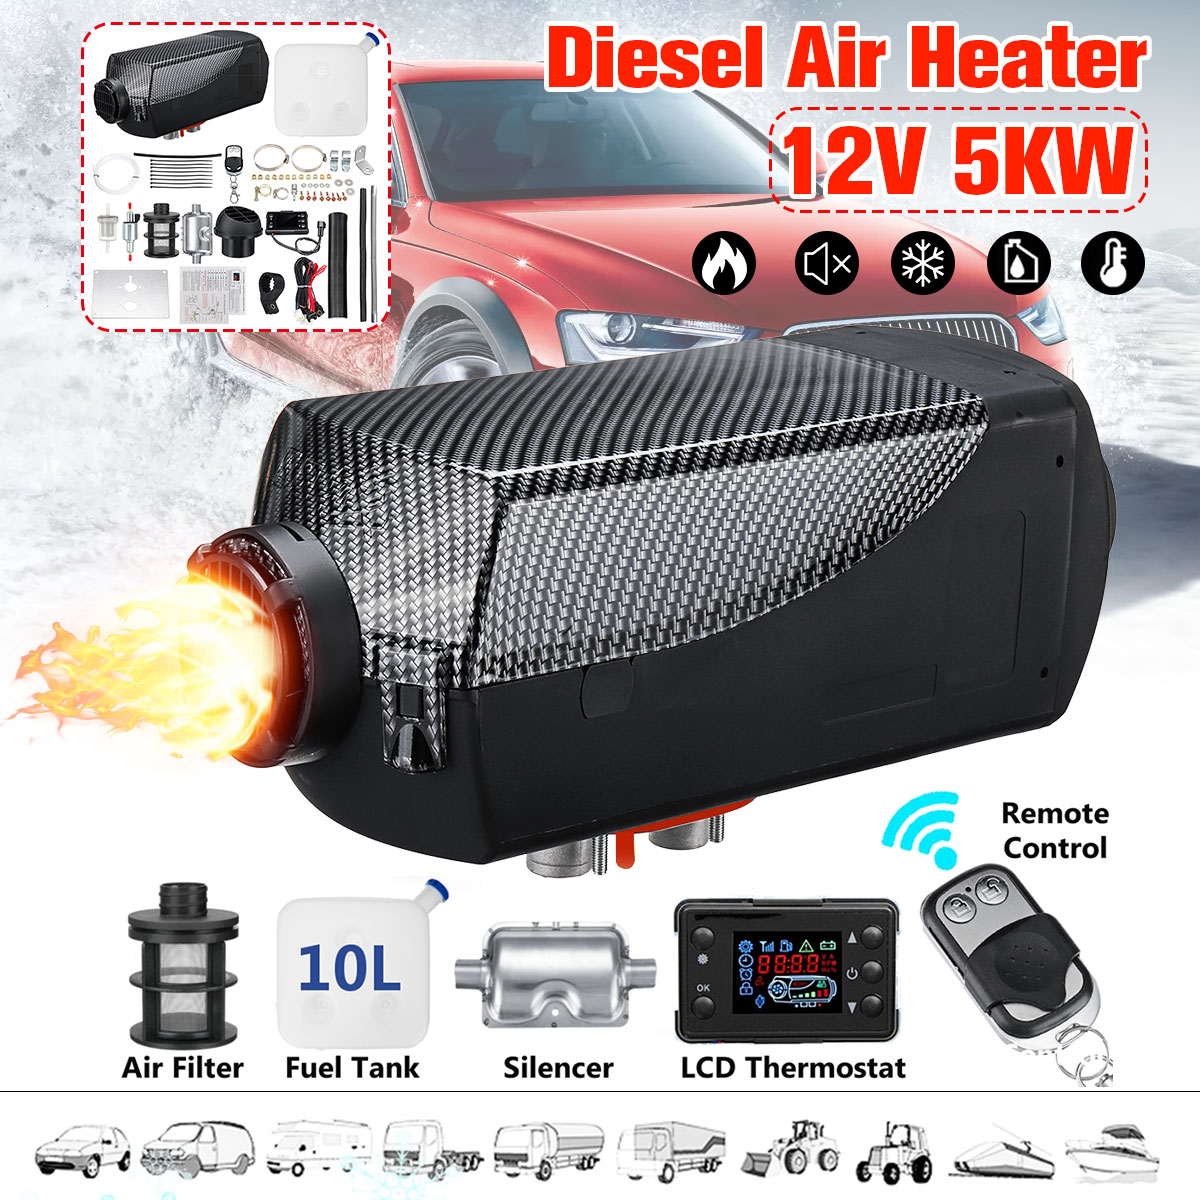 FlowerW Diesel Air Heater Dc 12V 5Kw Diesel Air Parking Heater Timing Temperature Control Universal for Trailer Trucks Boats